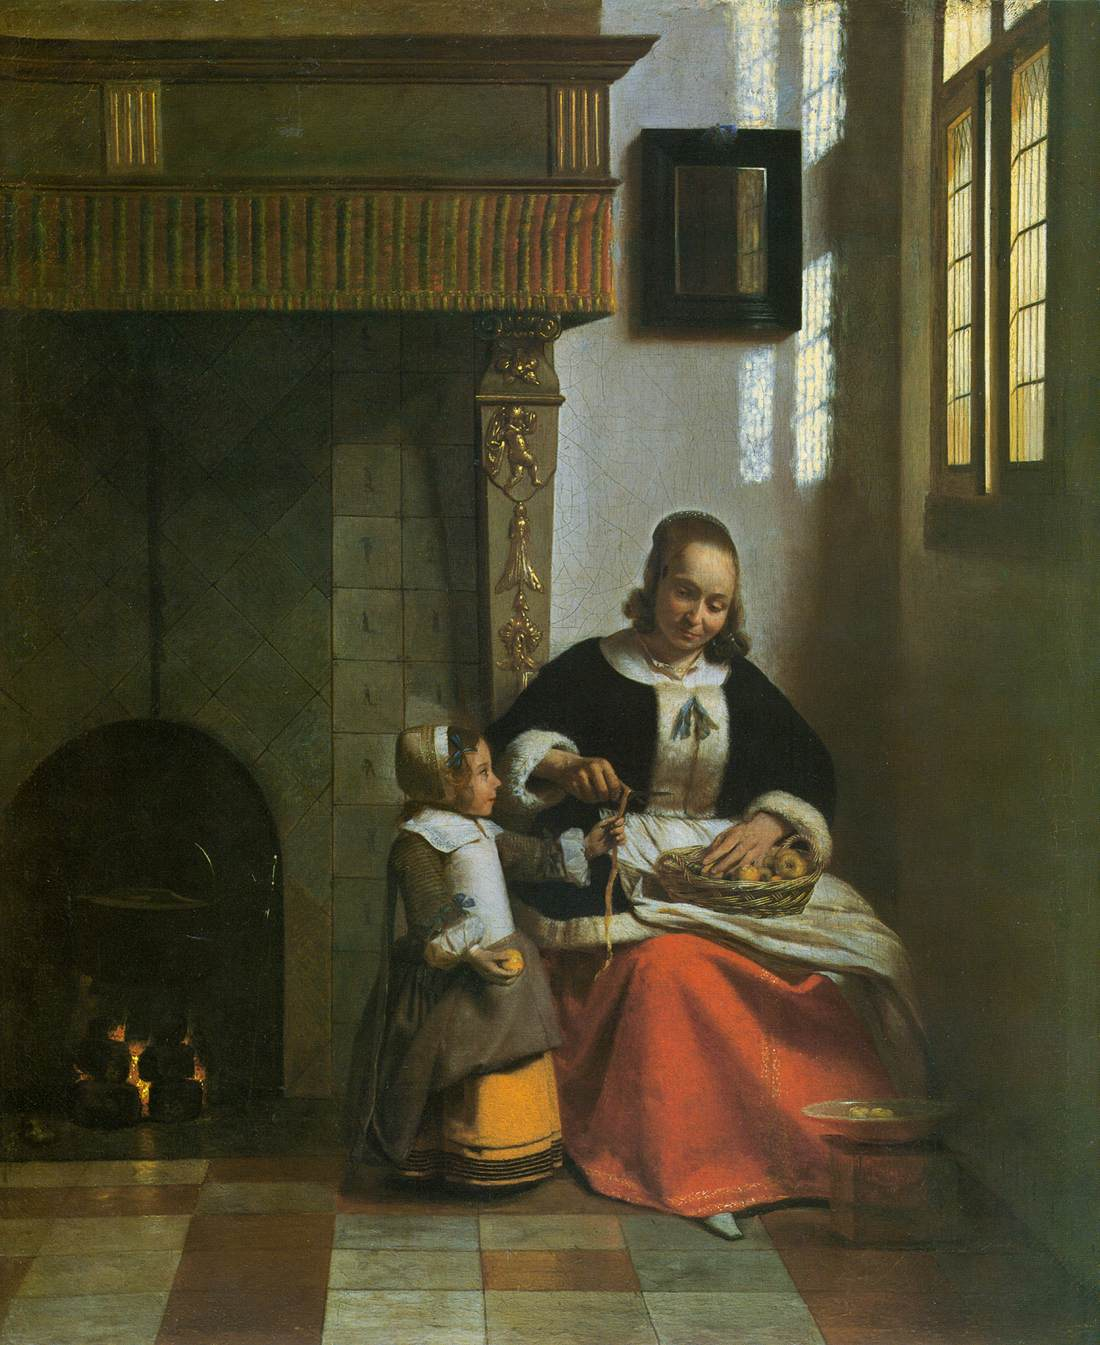 Famous Interior Paintings: A Woman Peeling Apples